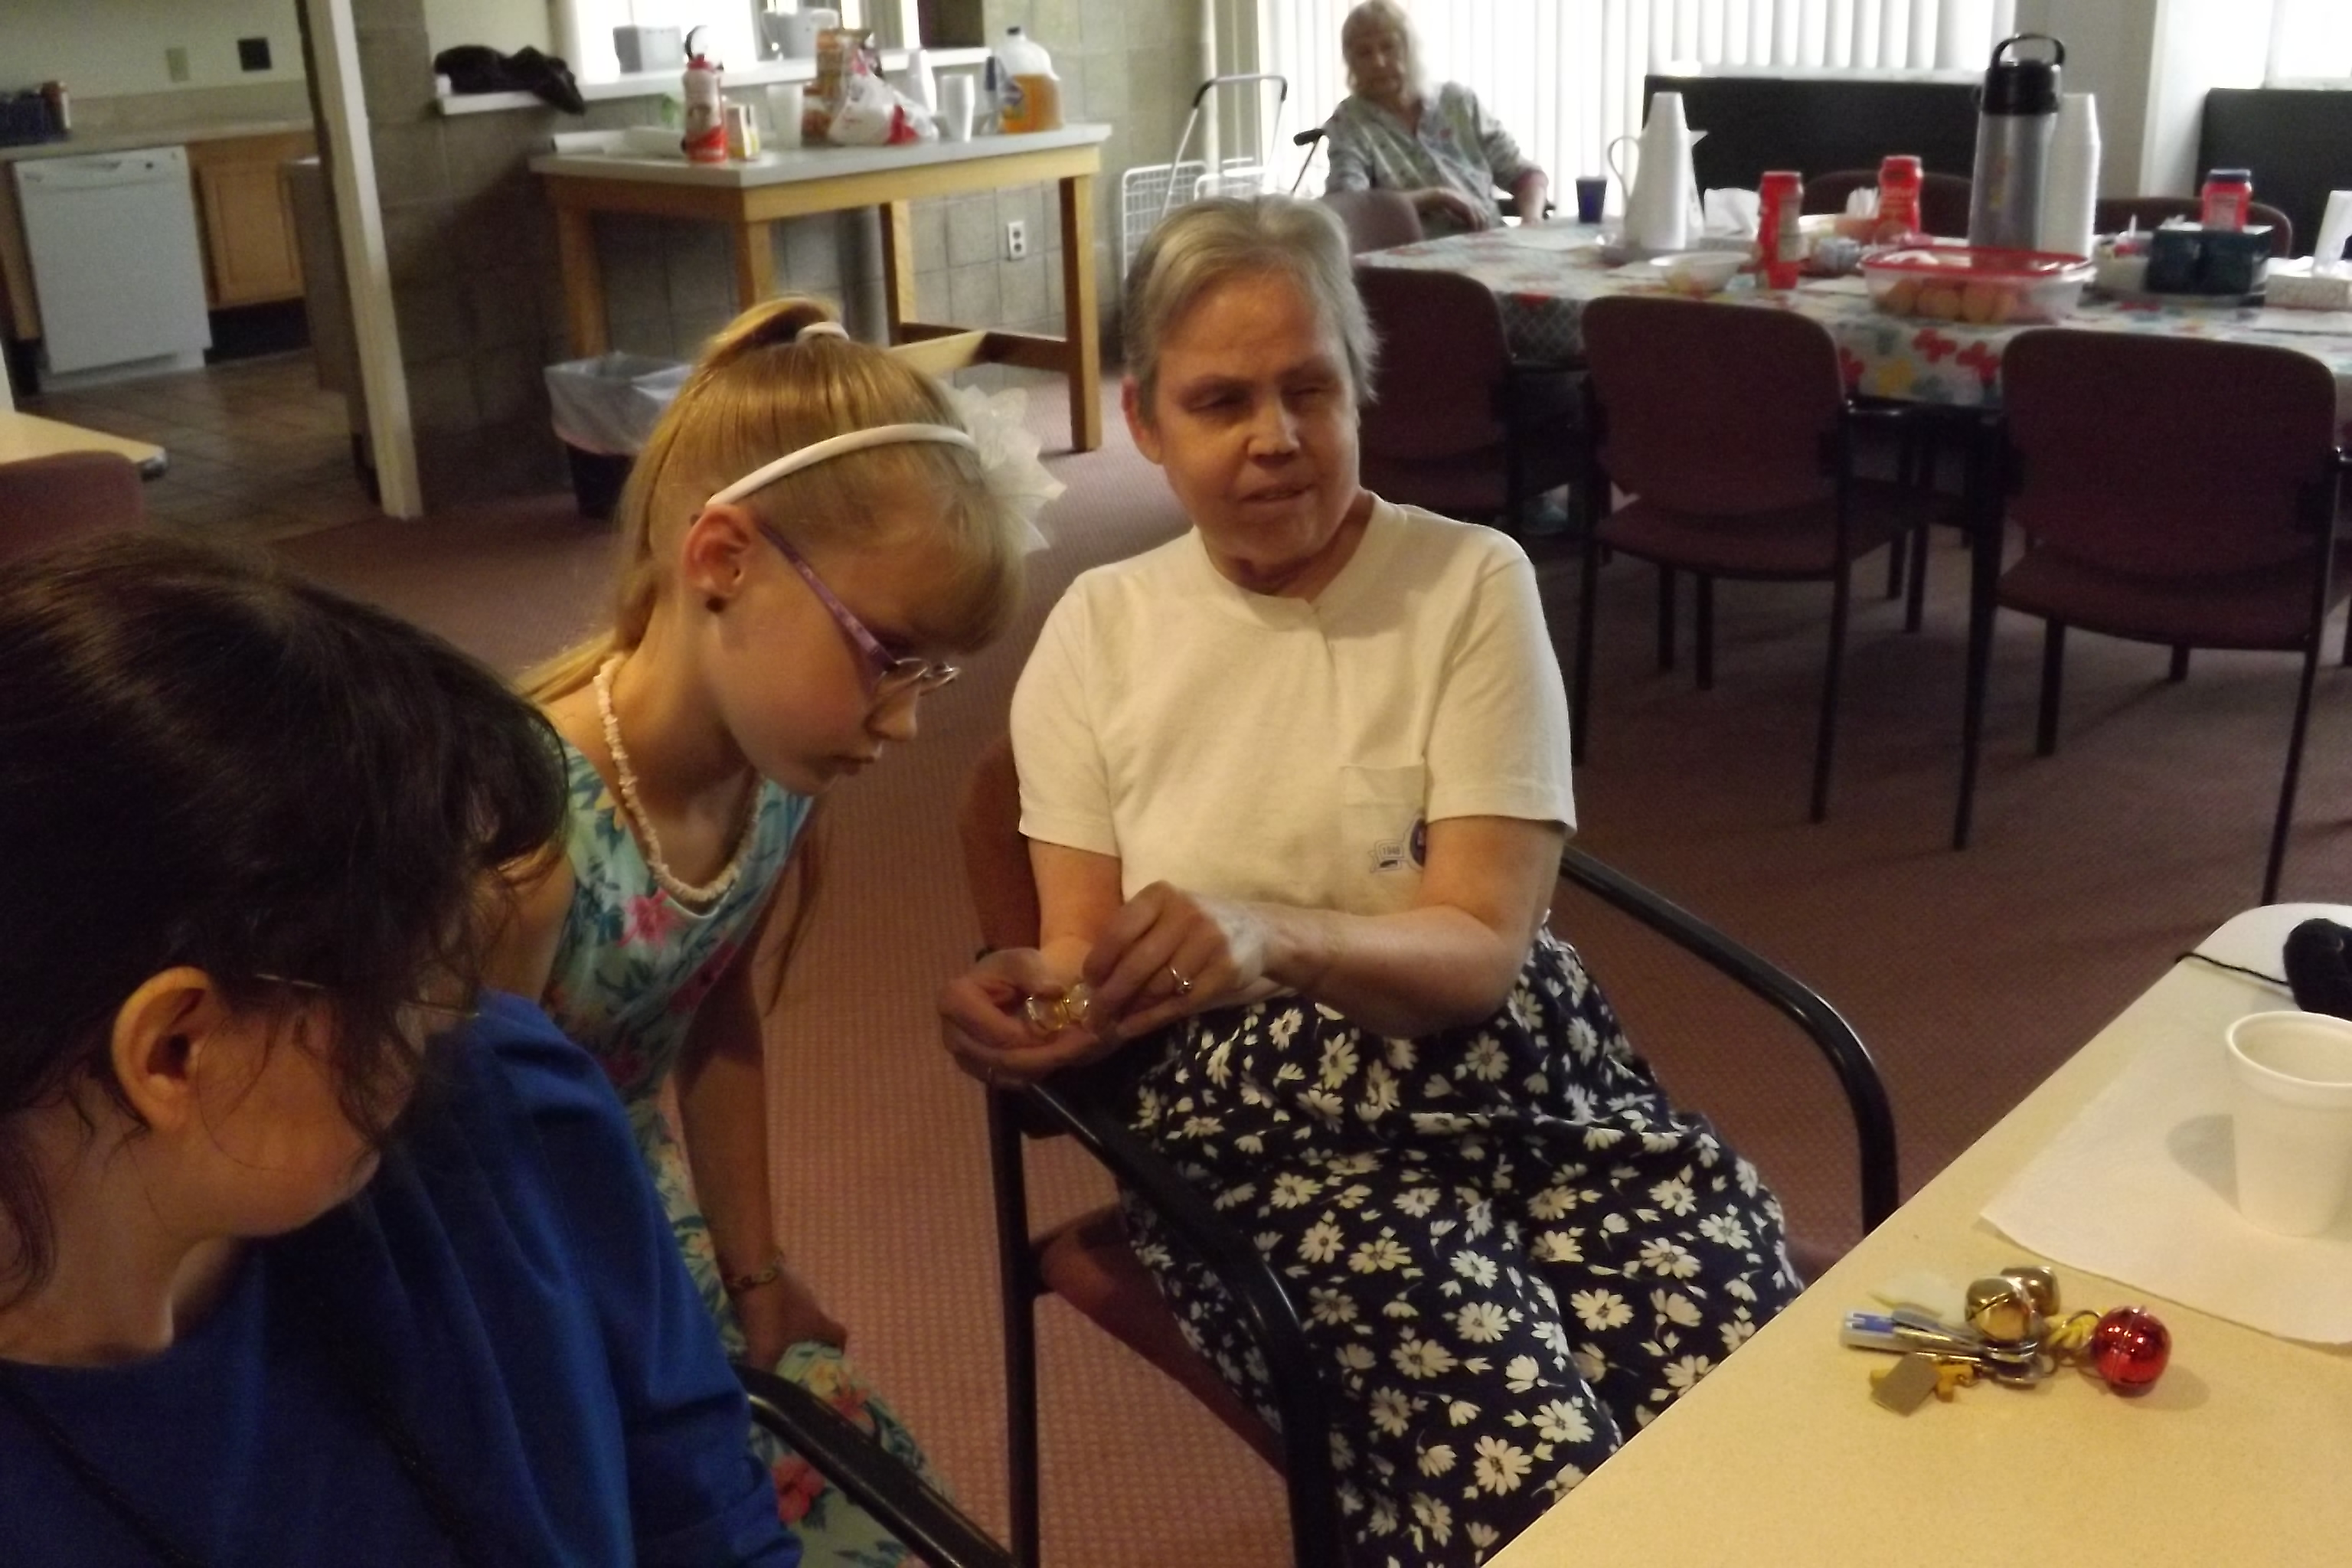 Kay shows her braille watch to Savannah at an Adaptive Life Skills Meeting.